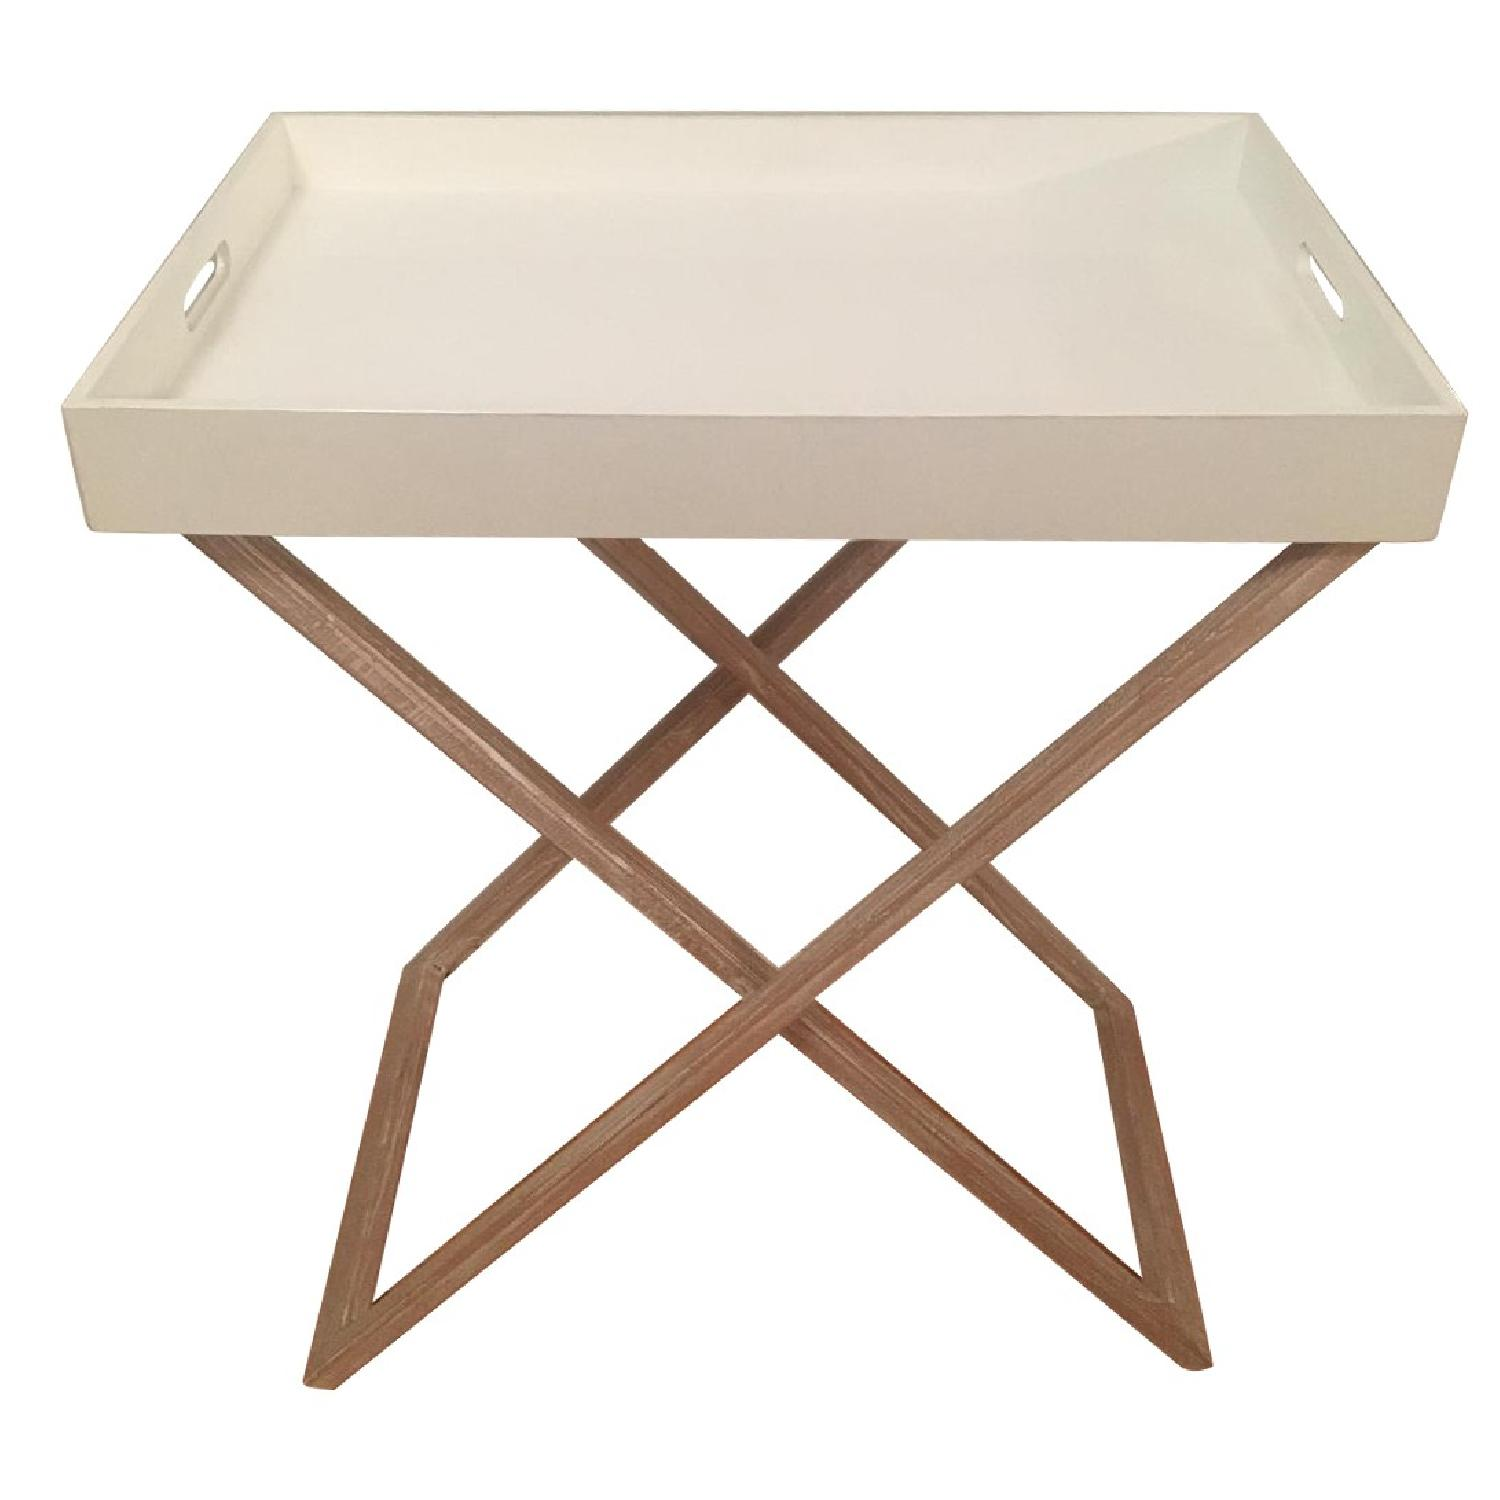 West Elm Butler Tray Table in White Lacquer & White Wood